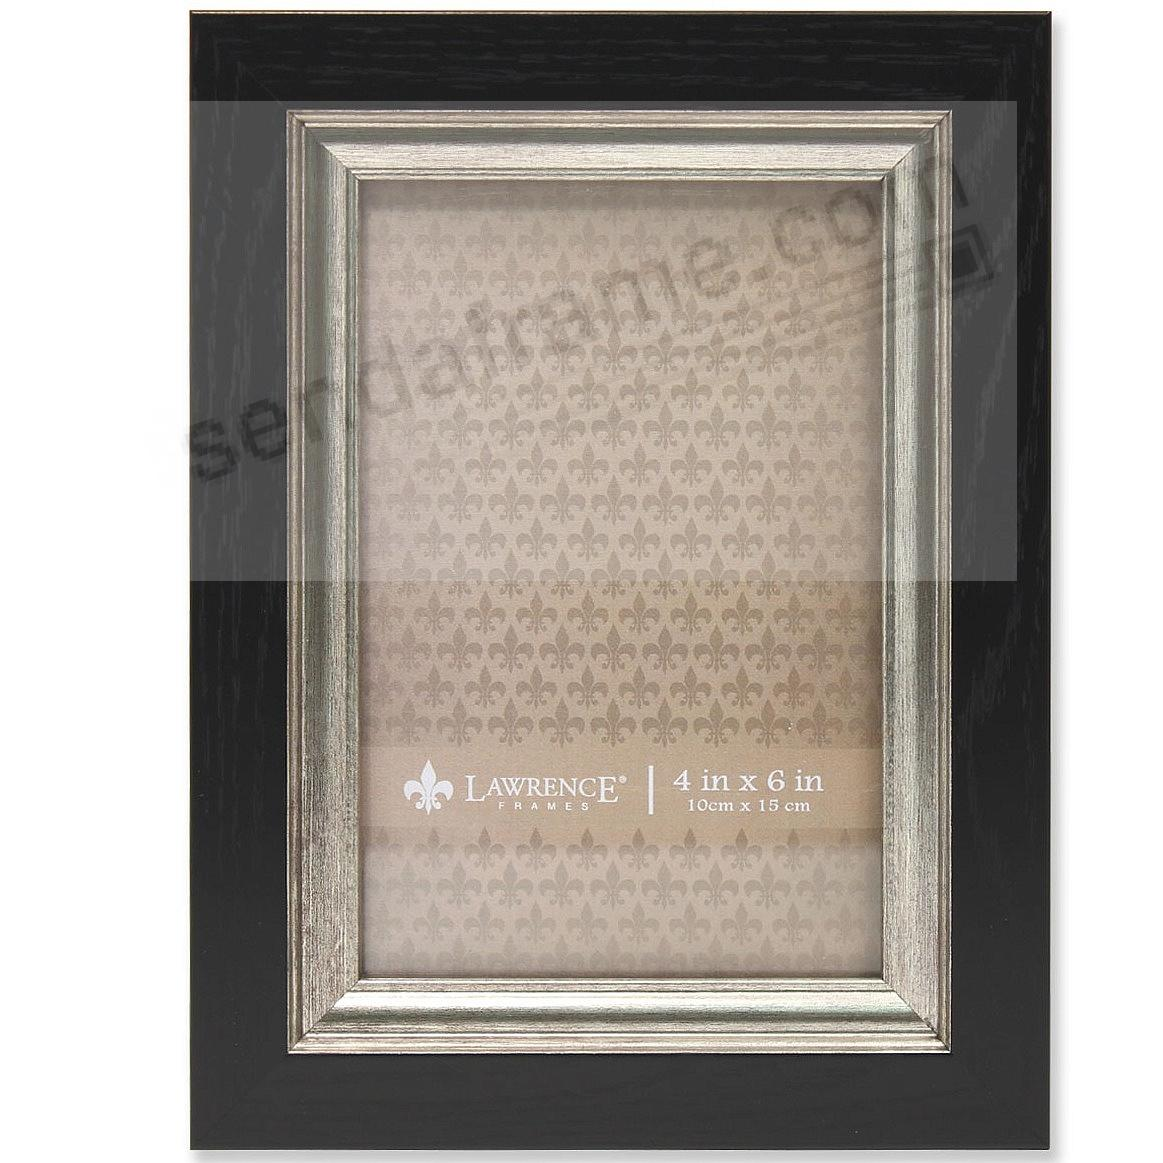 Black w/Burnished Silver trim composite-wood two-tone frame by Lawrence Frames®